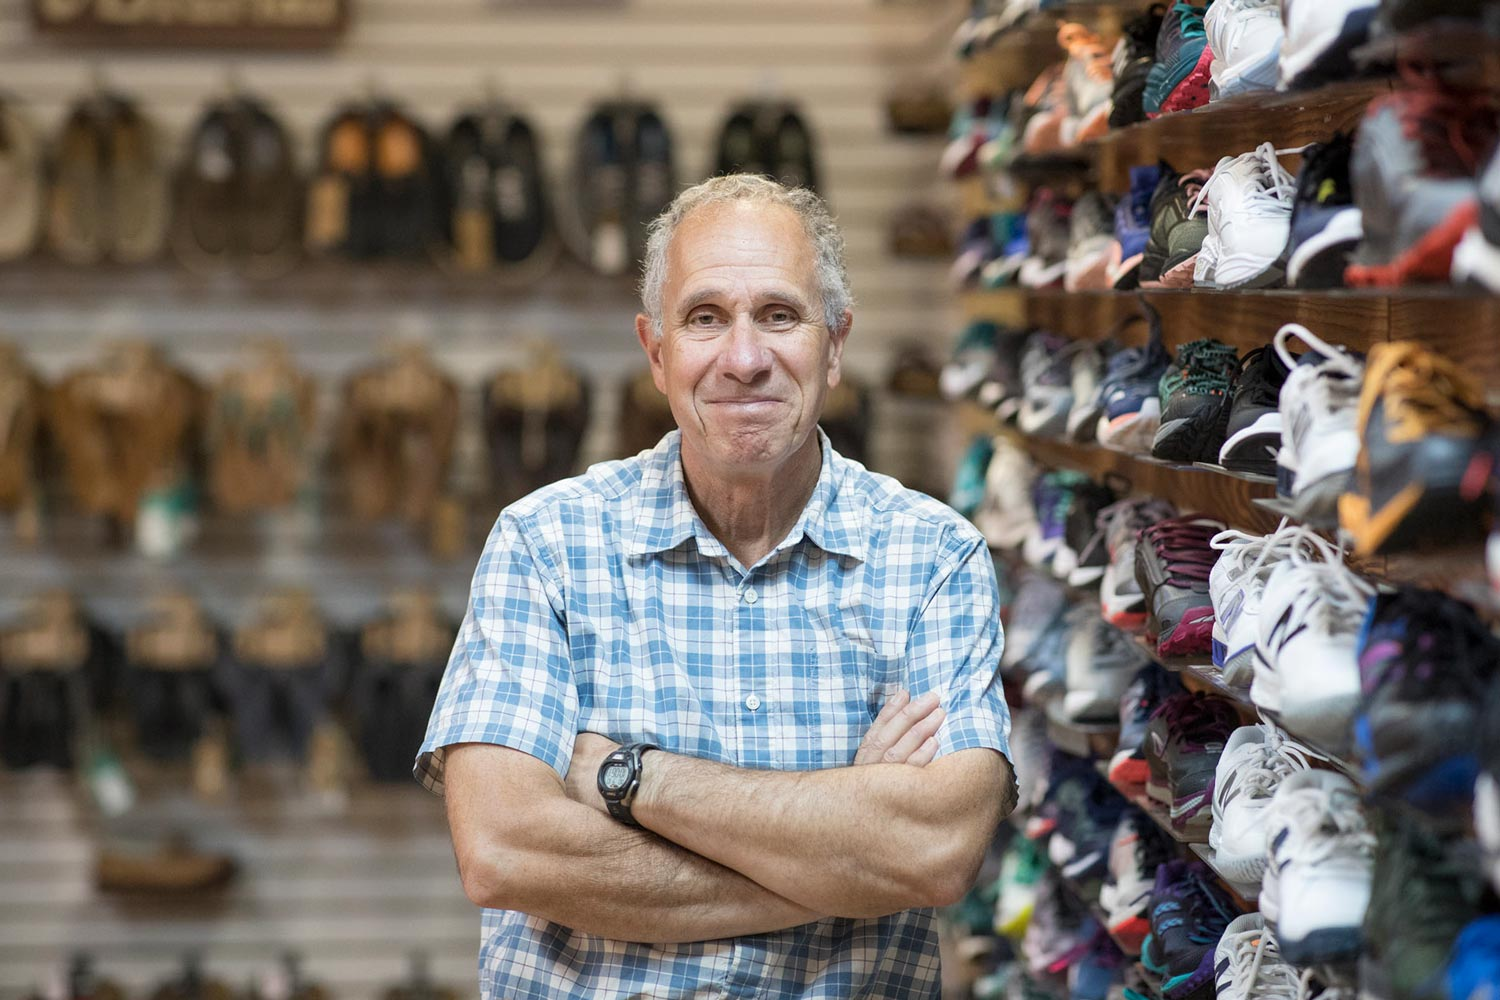 Mark Lorenzoni, pictured here in his Ragged Mountain Running Shop near UVA, is directing the Community Bridges 5K Run/Walk planned to celebrate President Jim Ryan's inauguration.